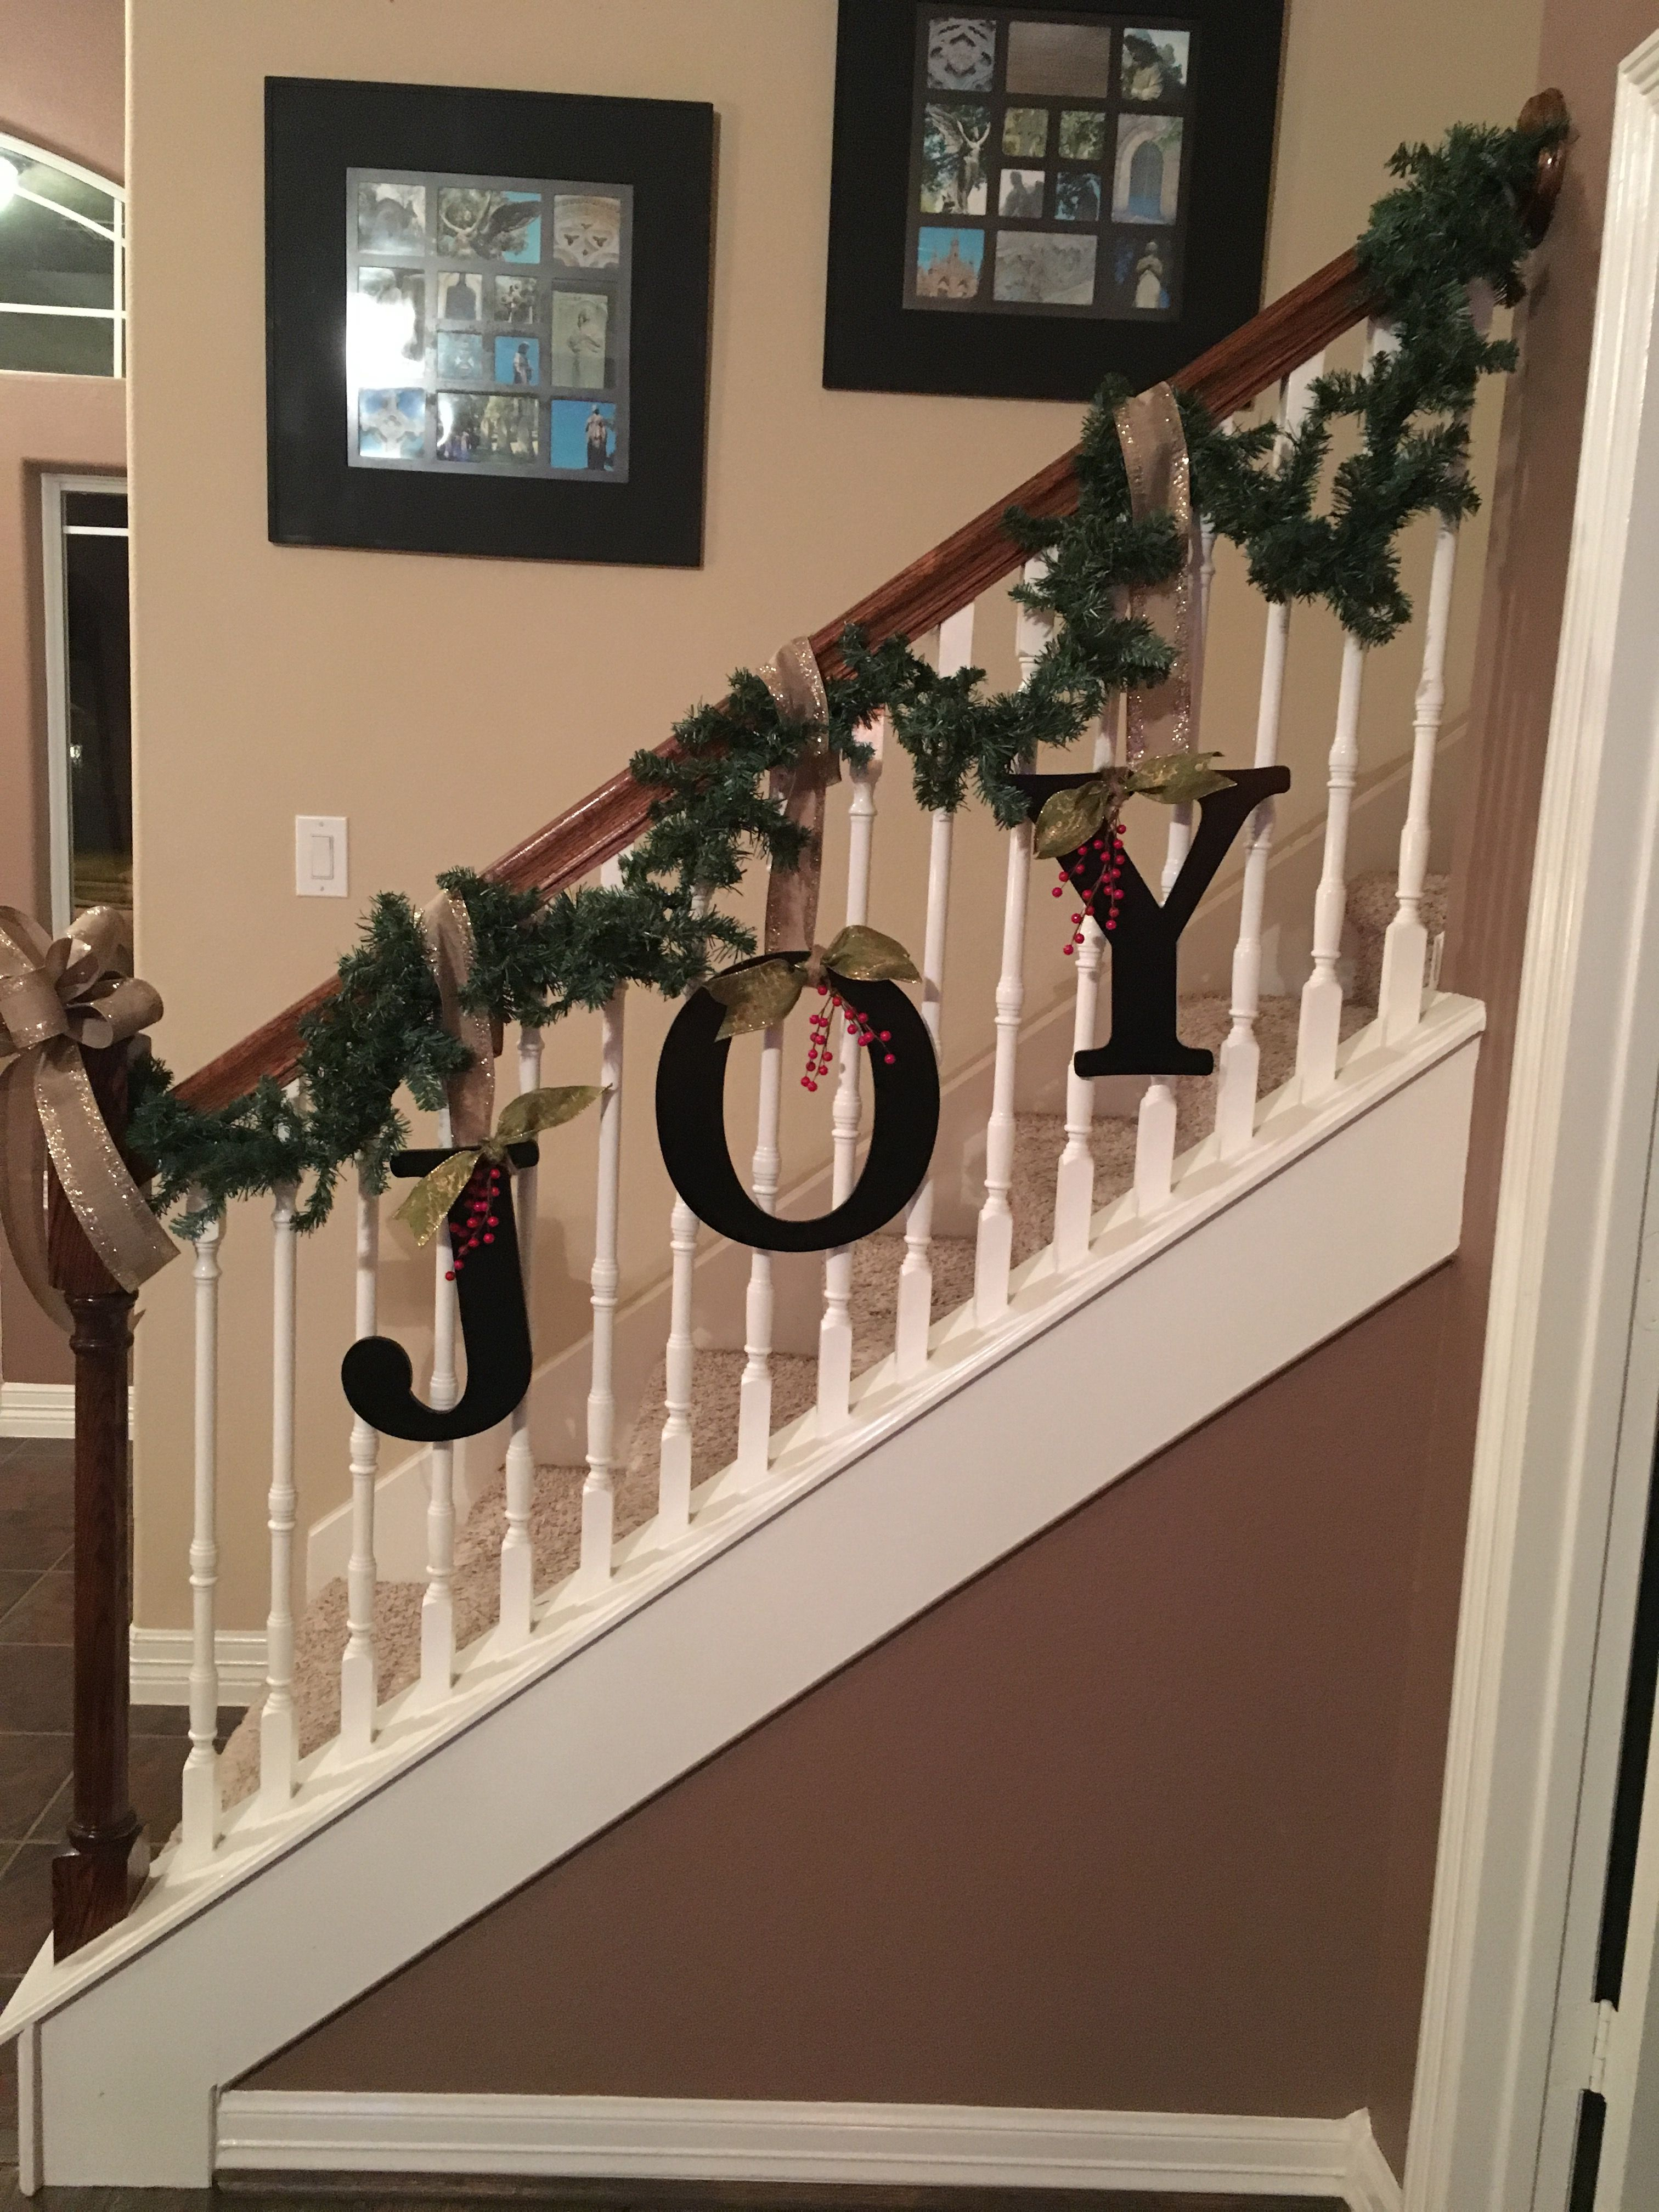 Revamp on banister for christmas this year teamlejeune for How to decorate a banister